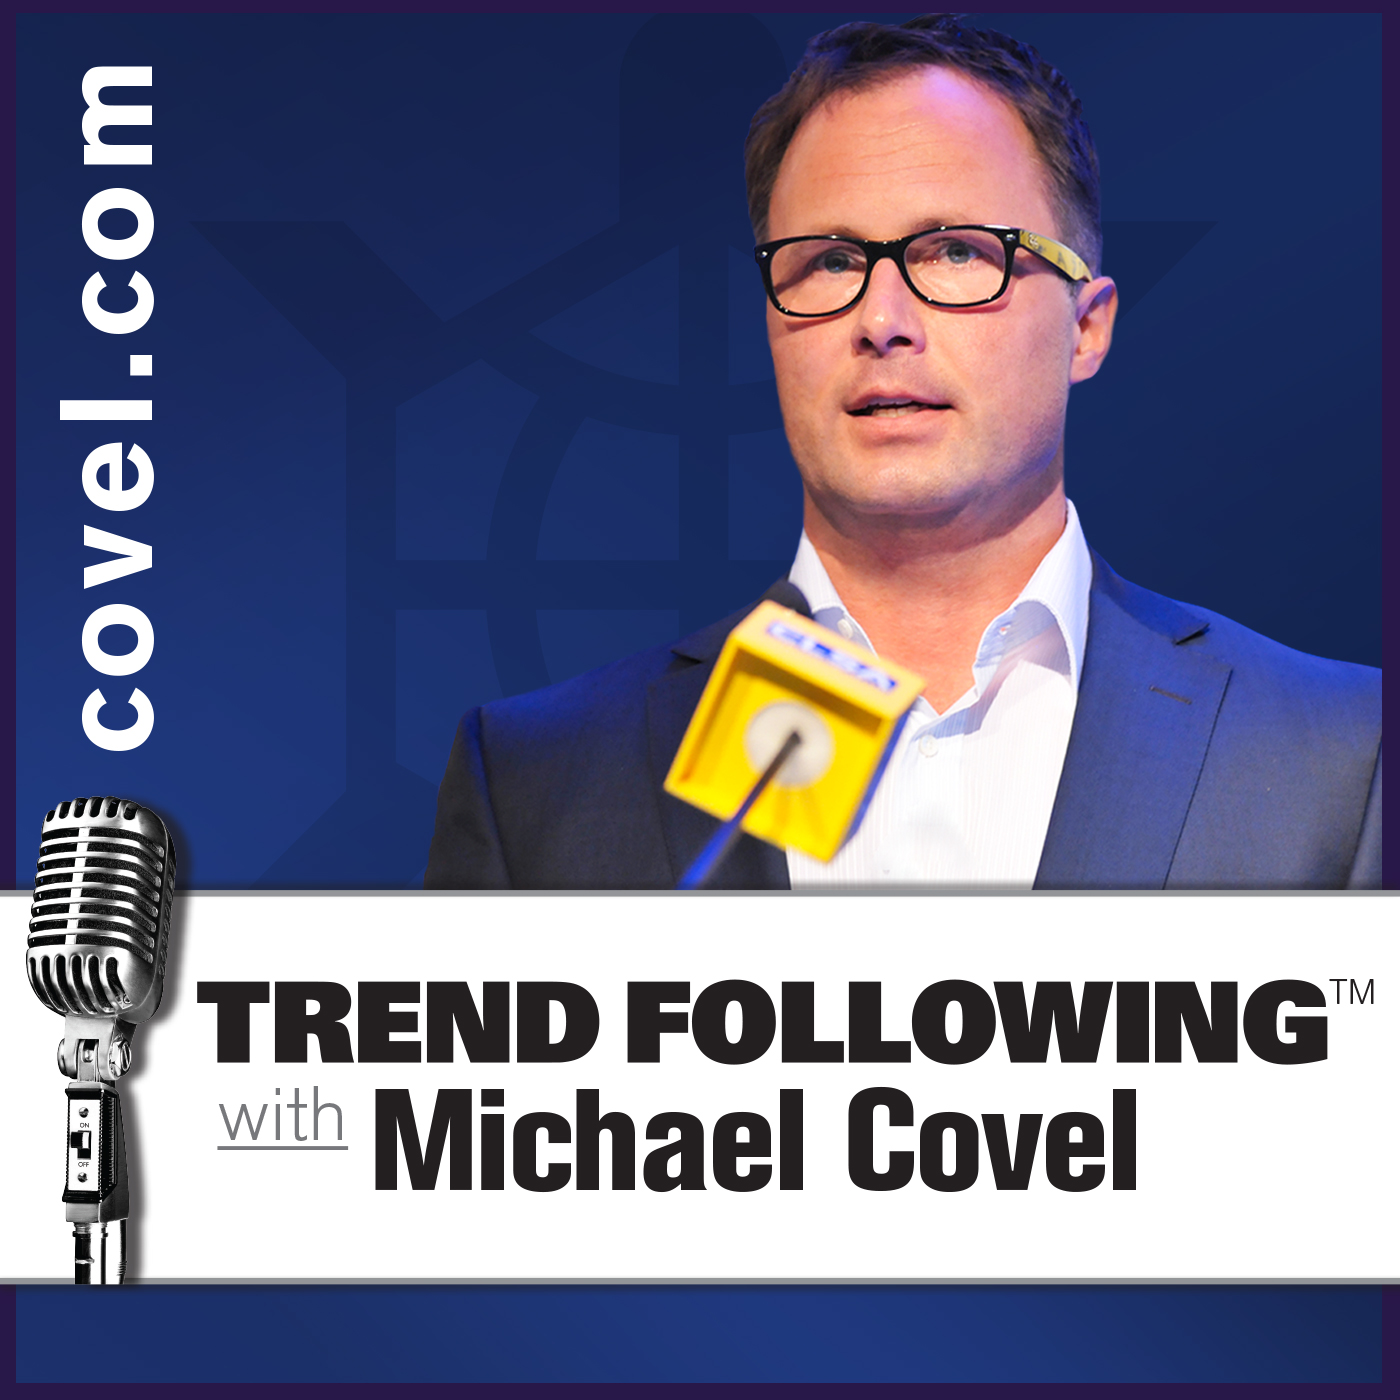 Ep. 496: Six Feet Under with Michael Covel on Trend Following Radio